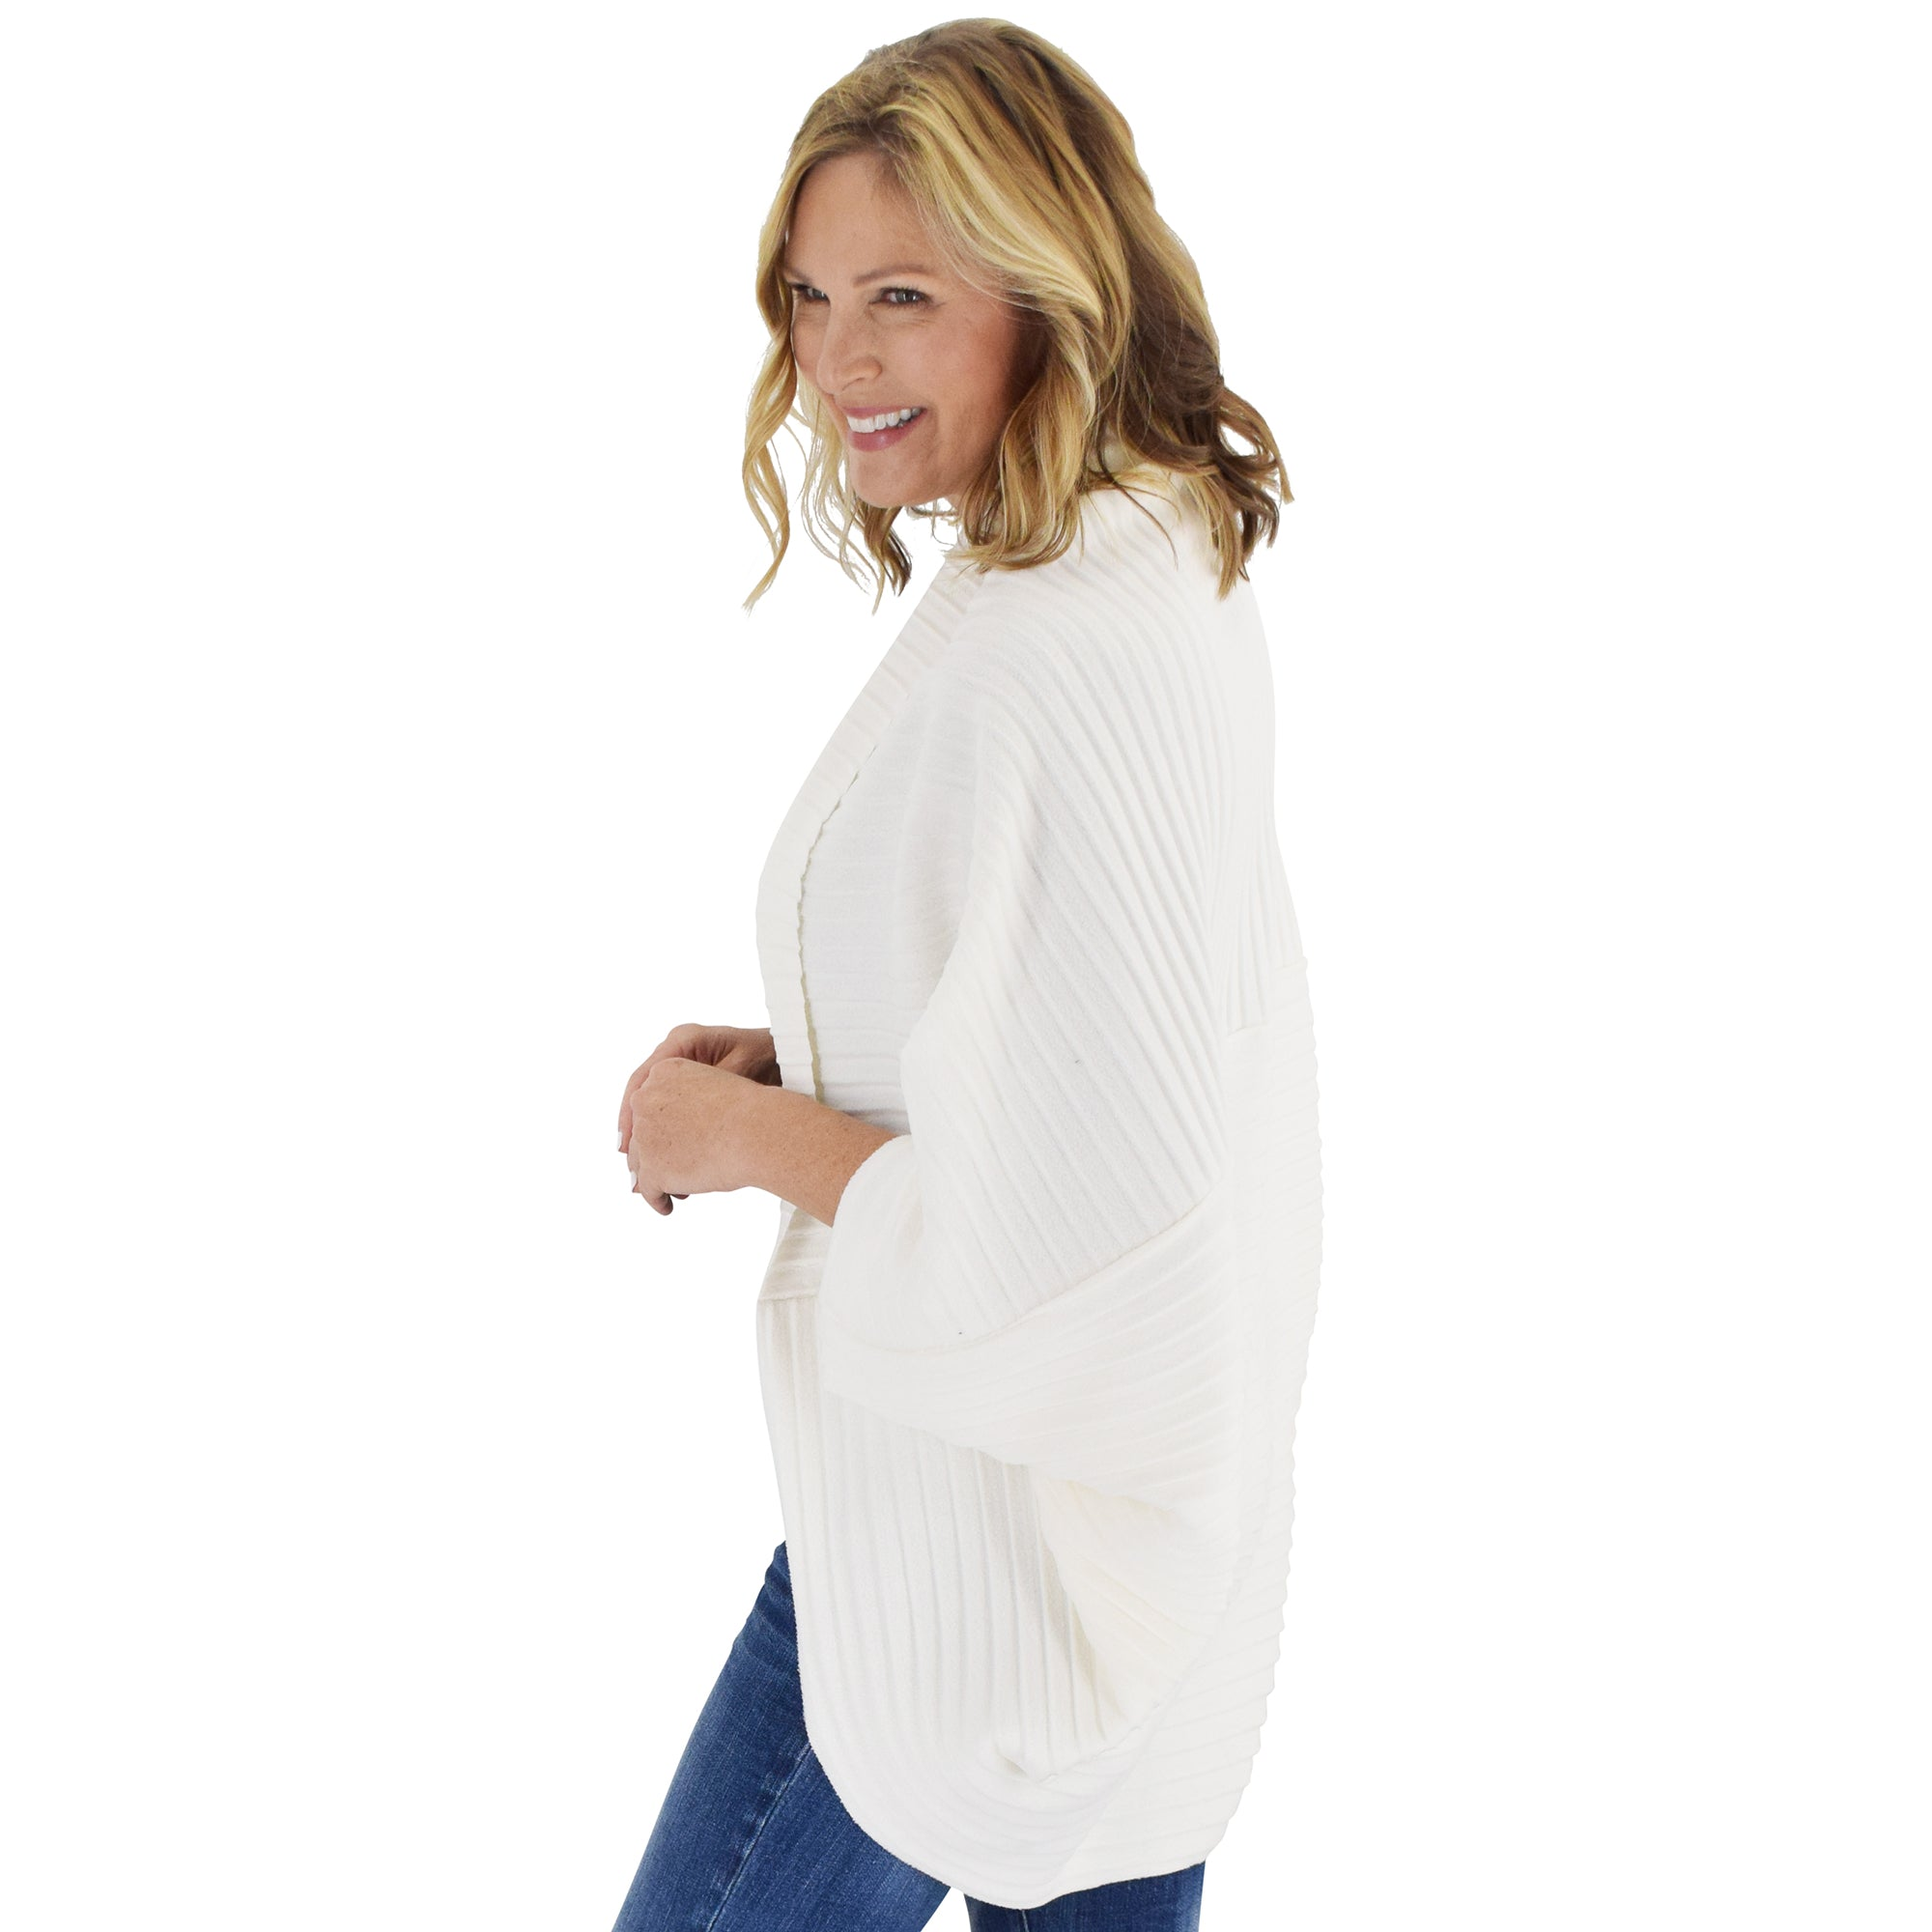 Le Moda Women's Plush Pleated Cozy Fleece Cocoon Cardigan - One Size Fits All at Linda Anderson color_white